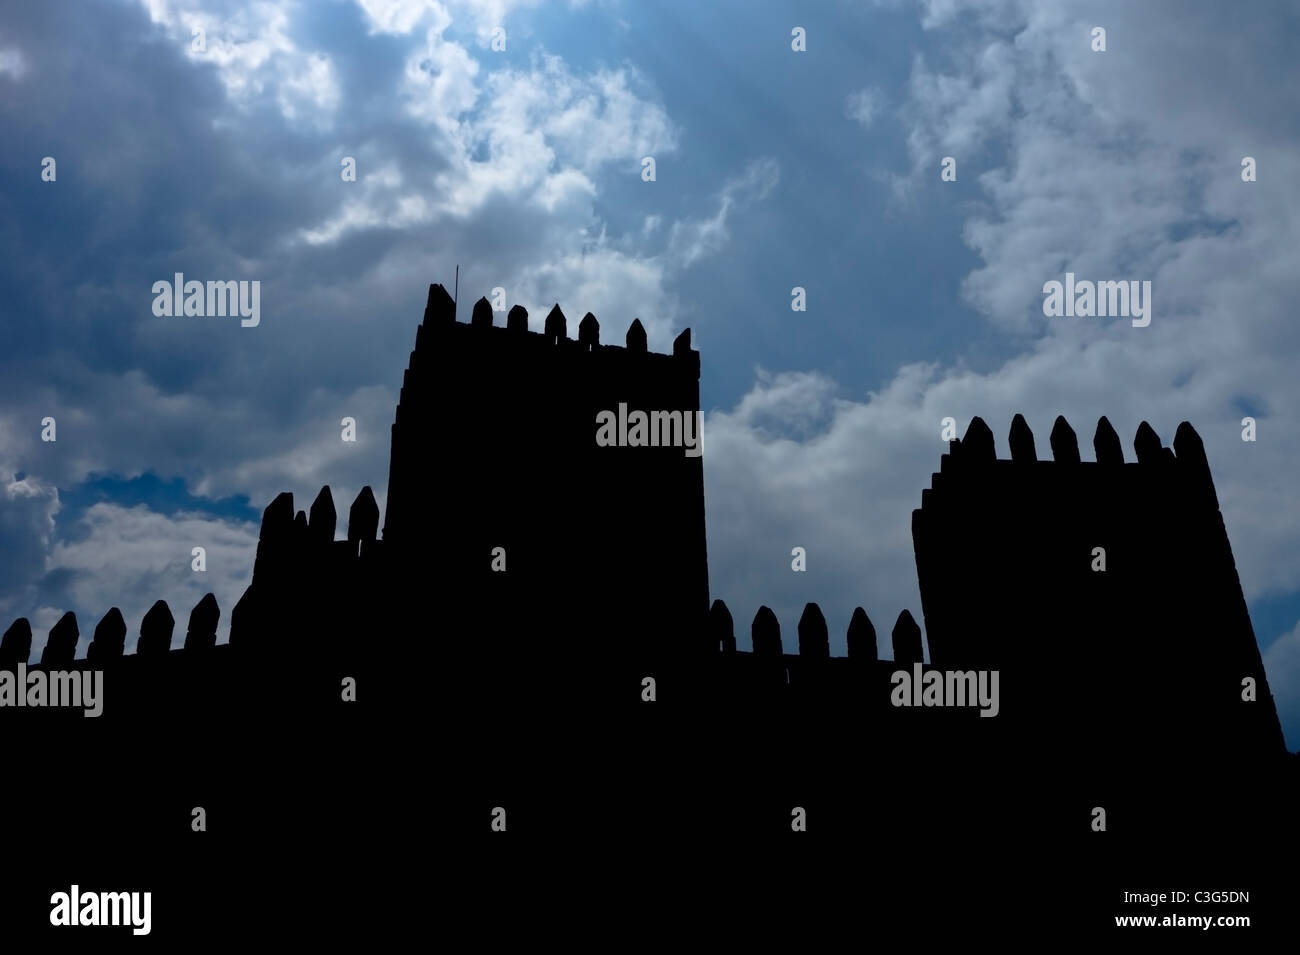 Silhouette of medieval castle - Stock Image